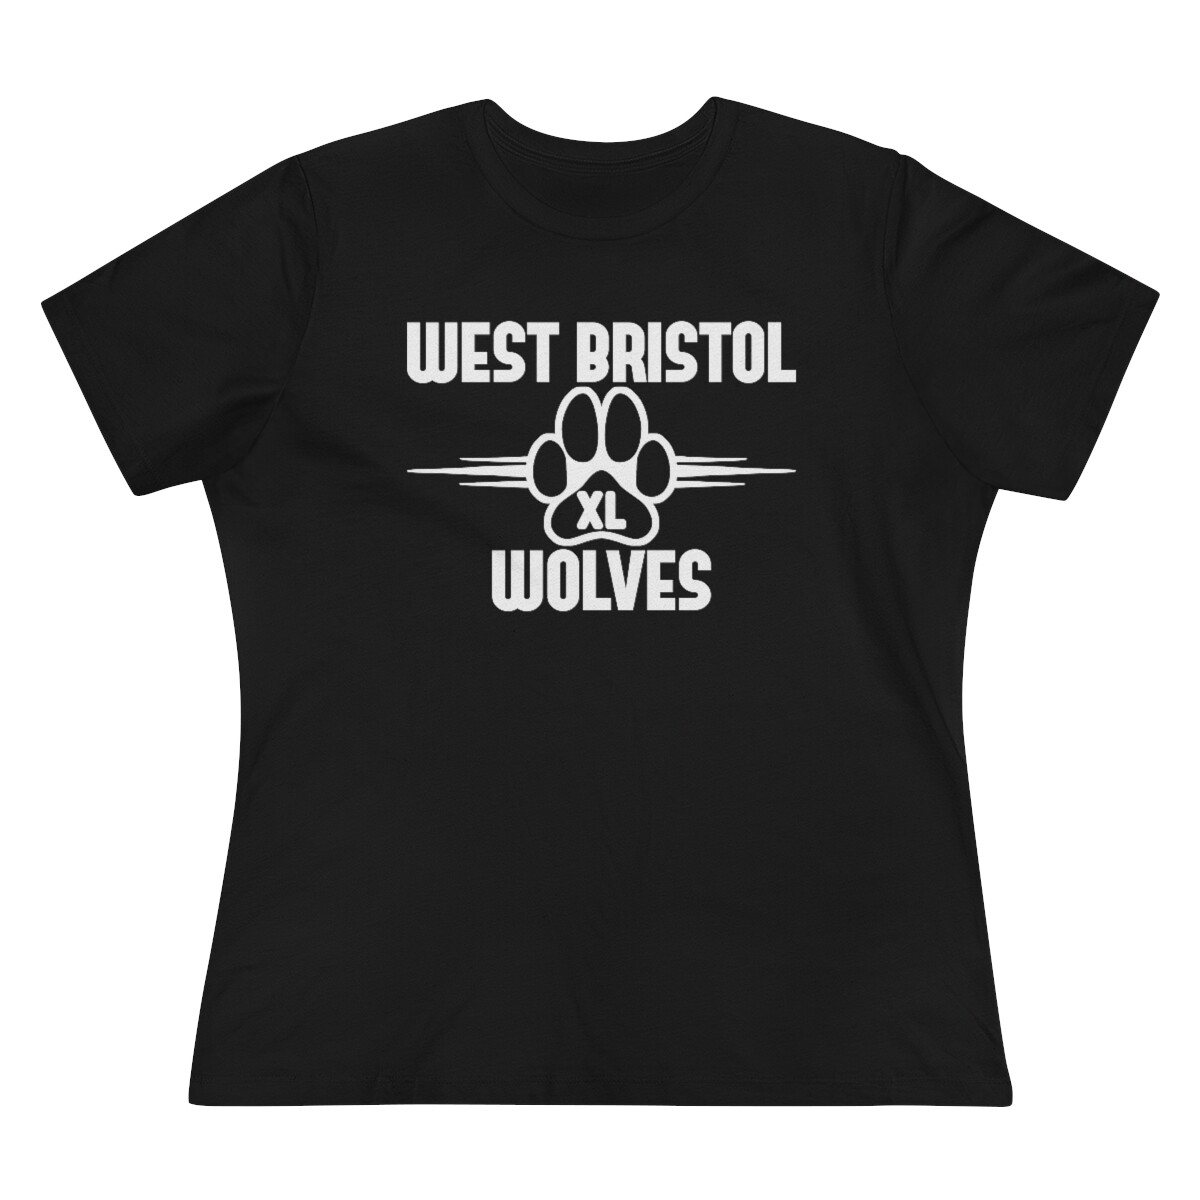 *West Bristol Wolves XL - 6400